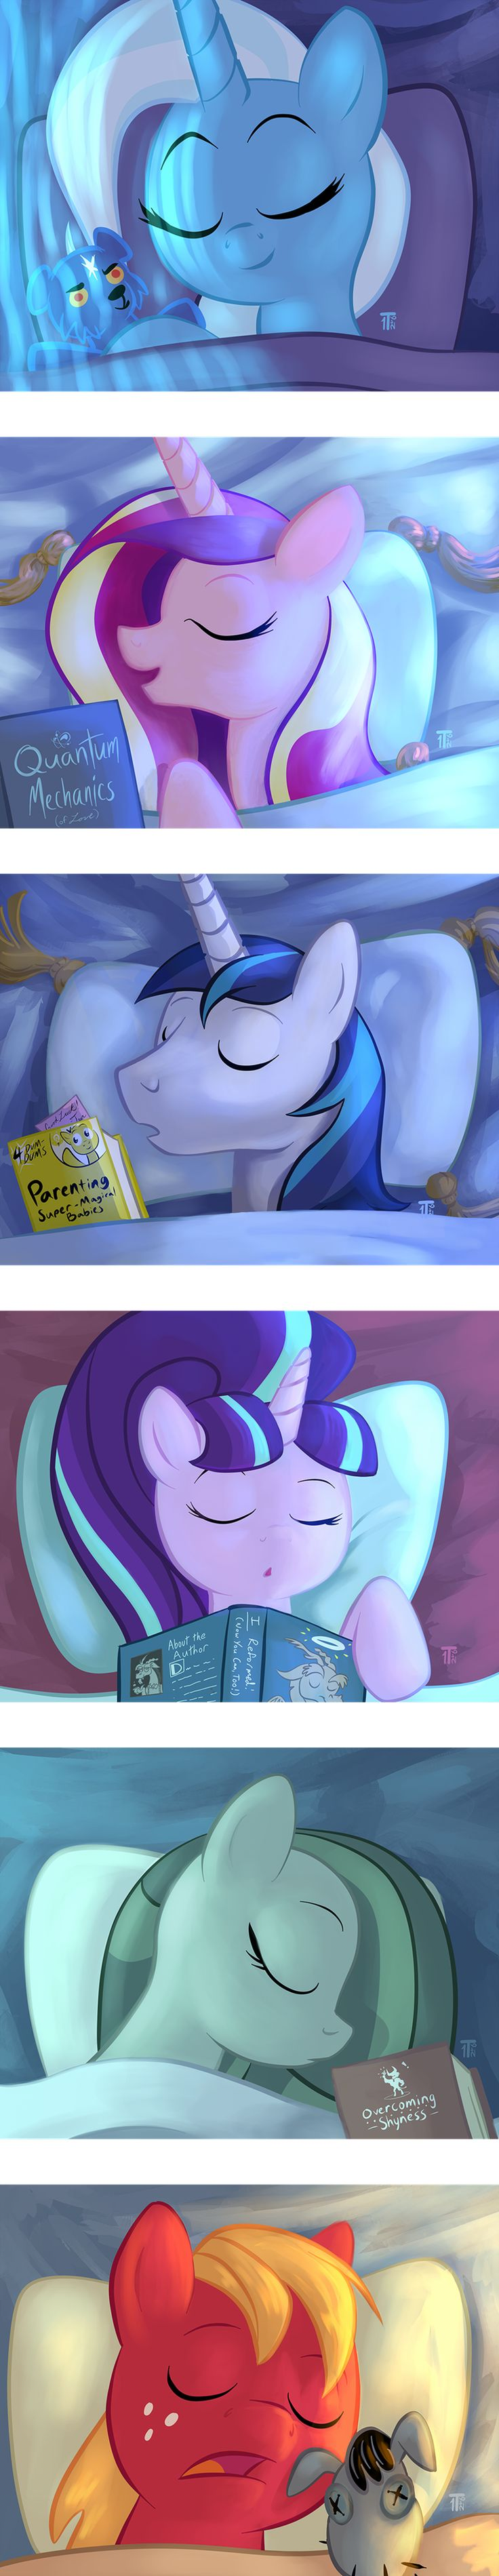 Shhh, Don't Disturb the Sleeping Horsies